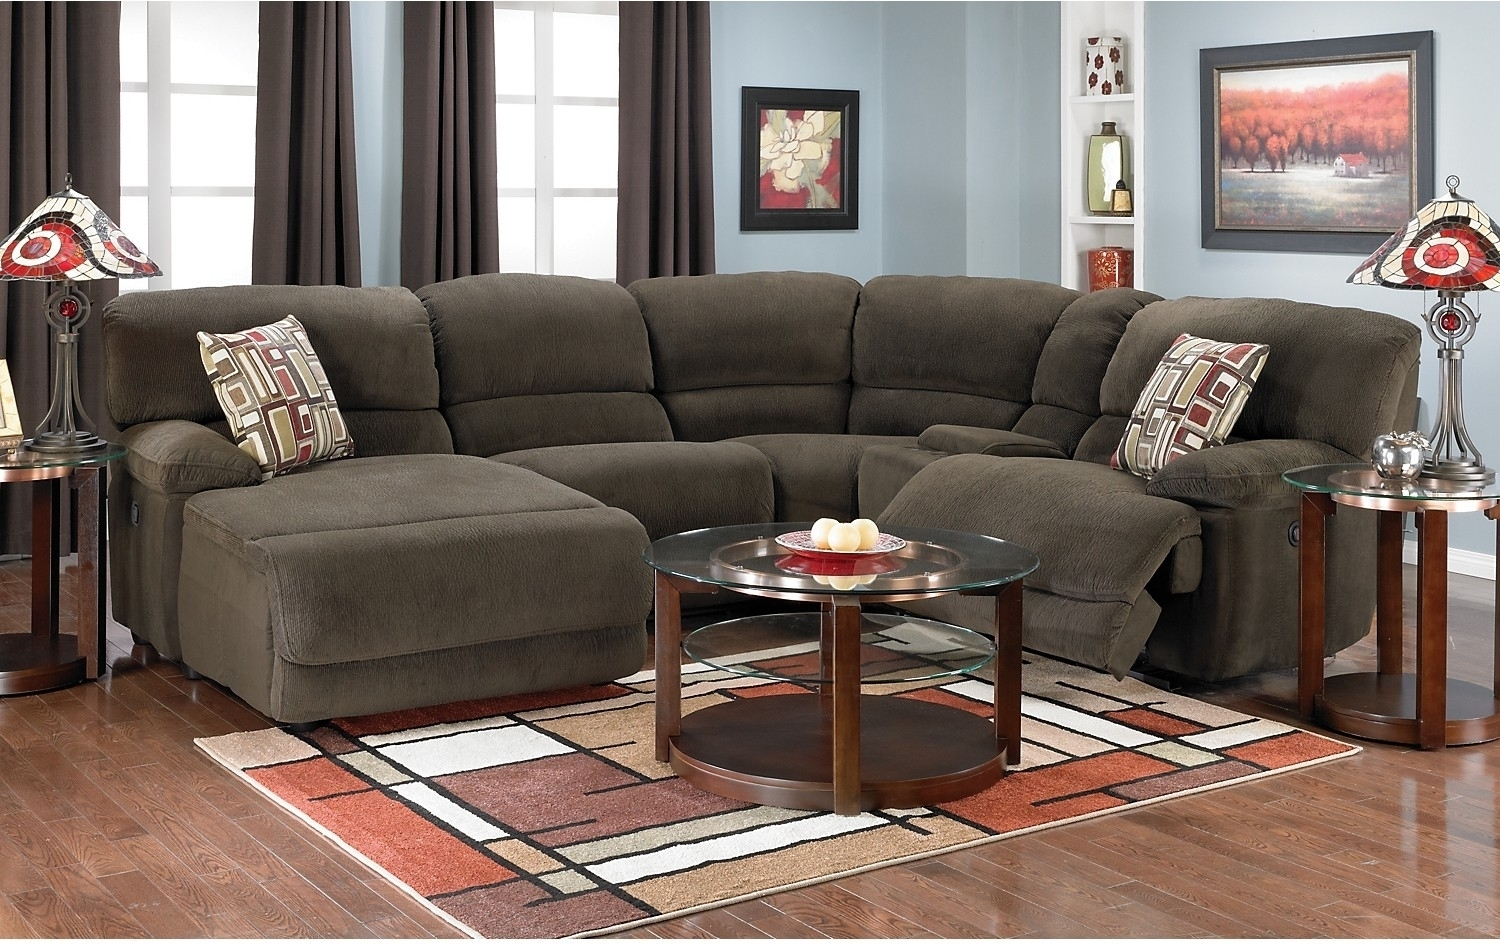 Devon Devon 5 Piece Sectional With Chaise And Sleeper Sofa With Regard To Sectional Sofas At Brick (View 3 of 10)